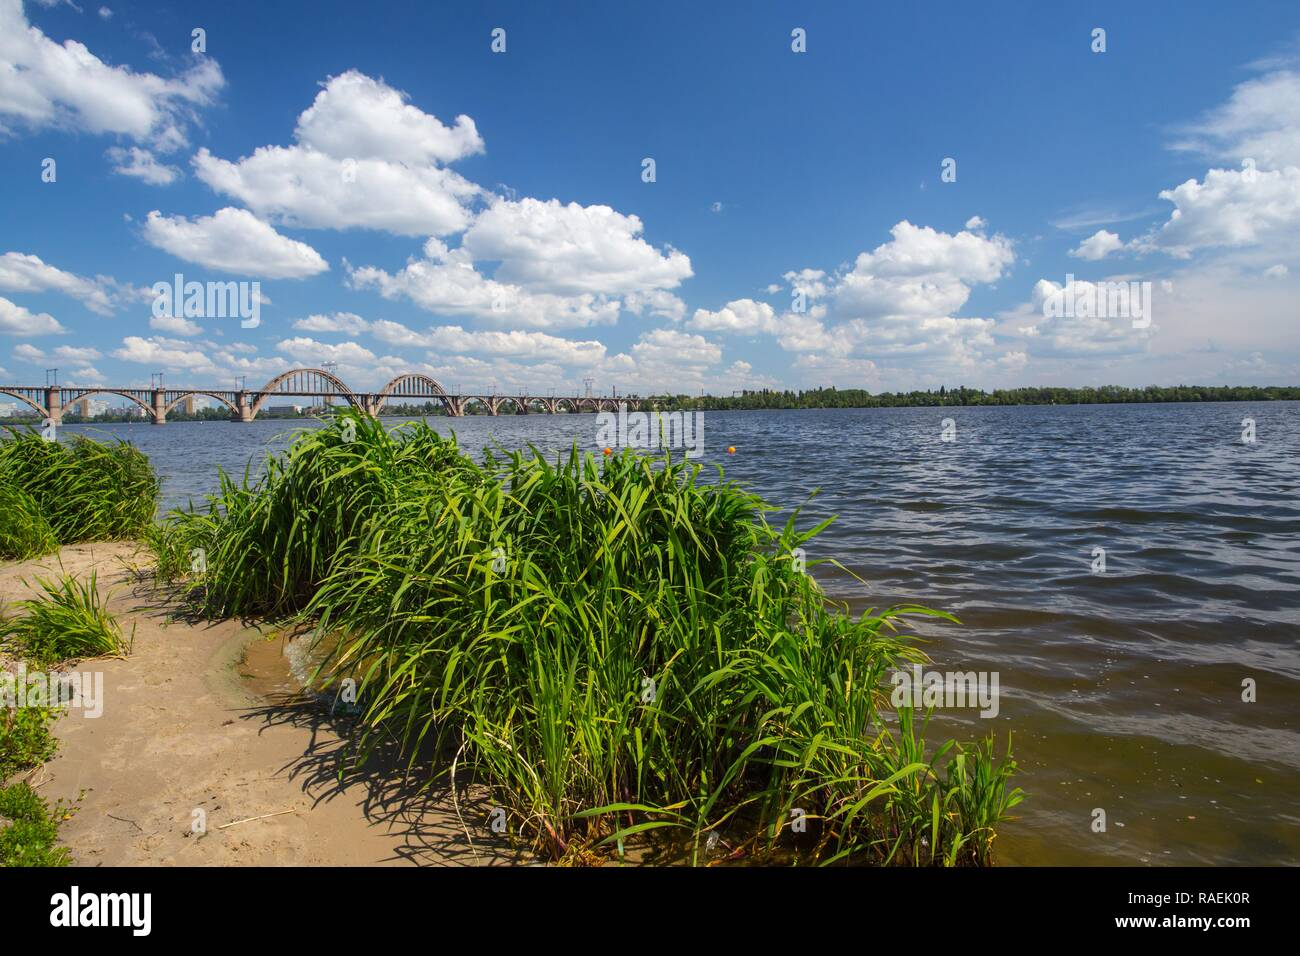 dnipropetrovsk, arched bridge across the Dnieper River - Stock Image